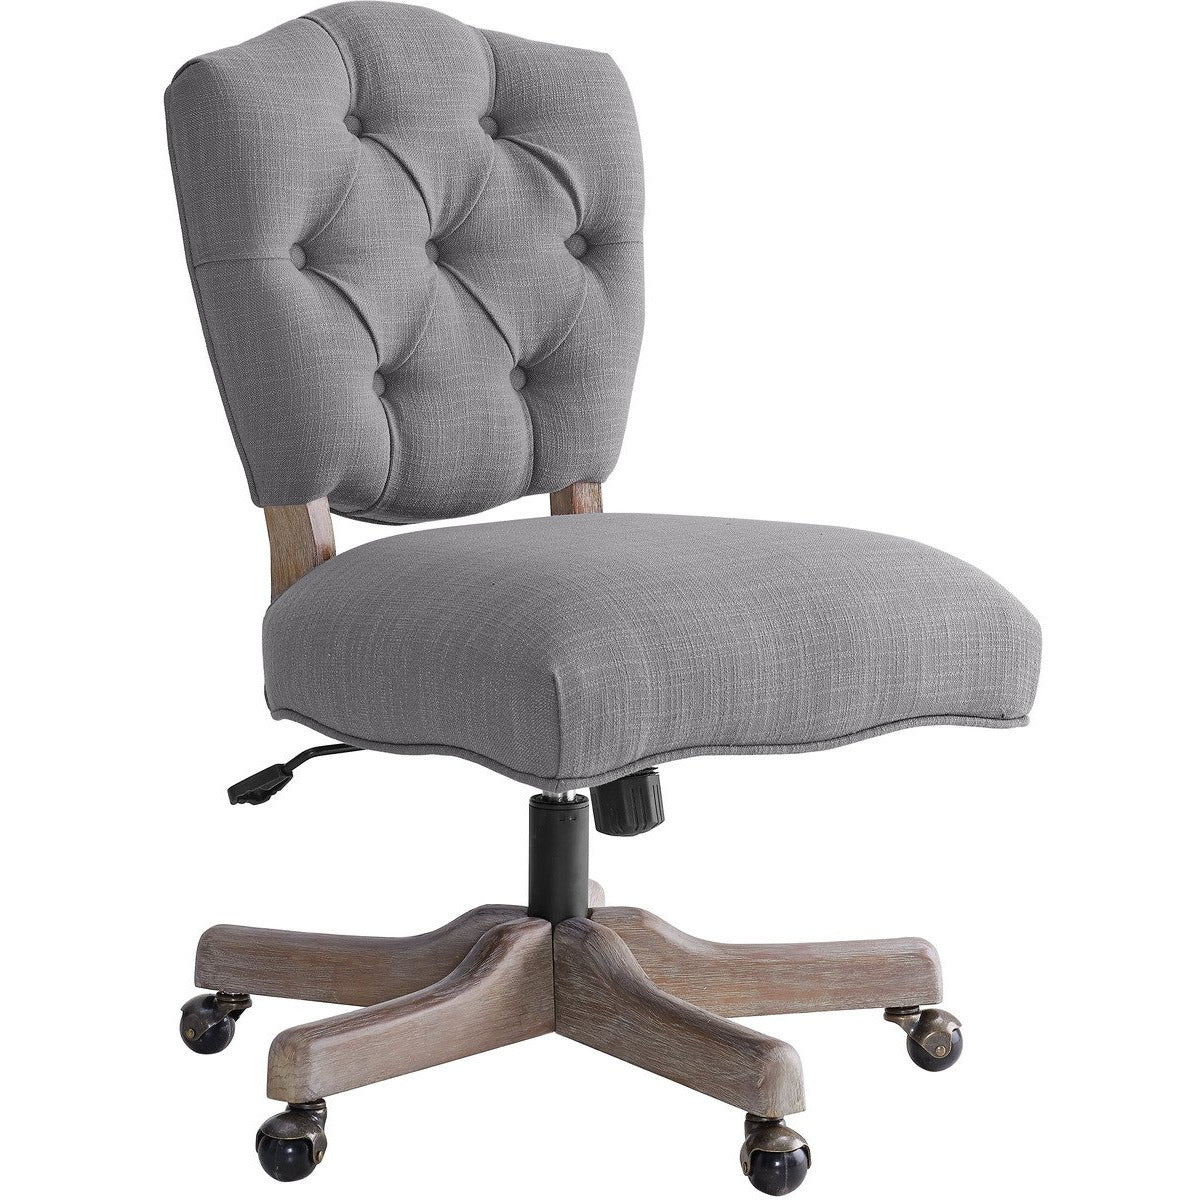 Office Chairs - Armless Office Chair With Wooden Base And Tufting, Gray And Brown